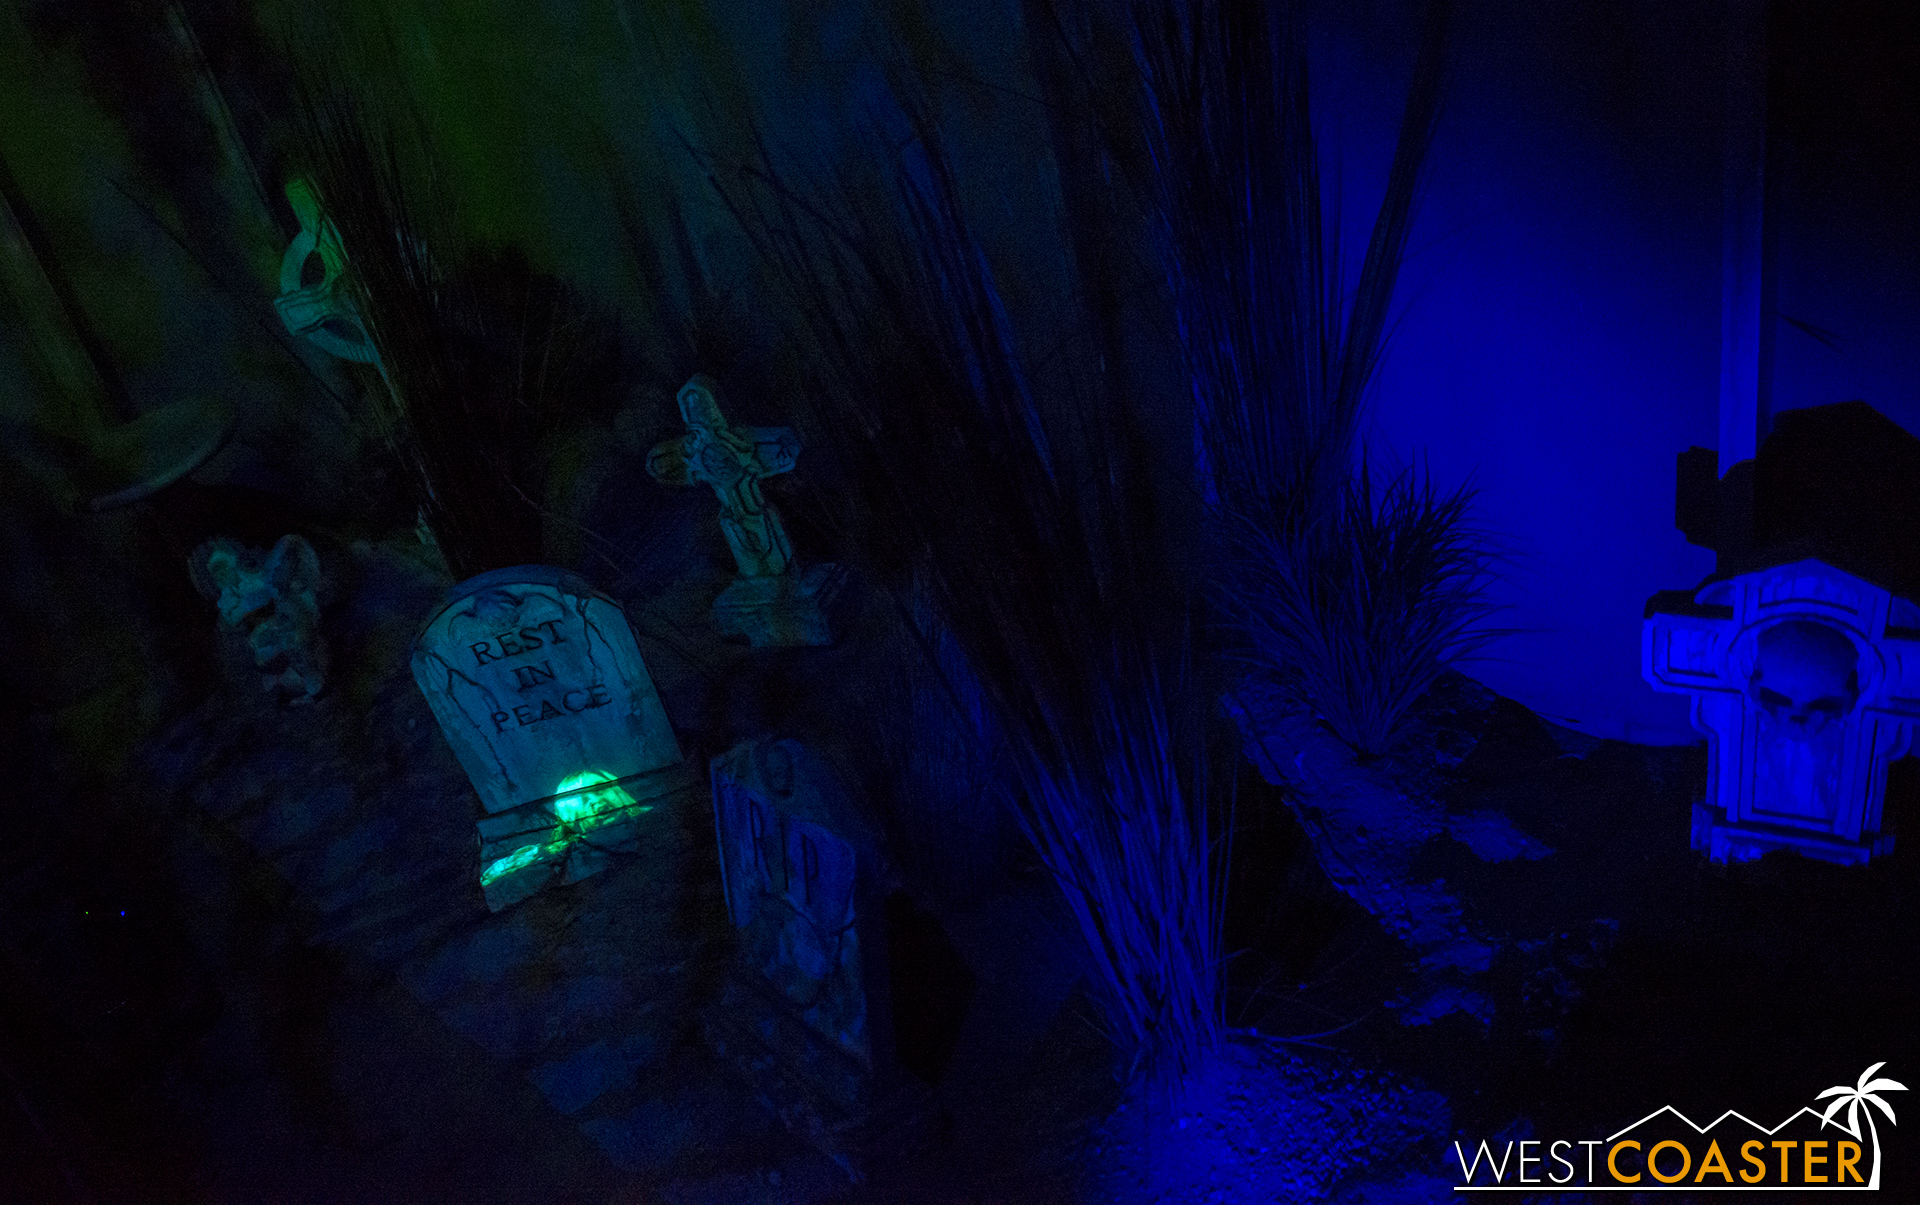 A graveyard in the next scene.